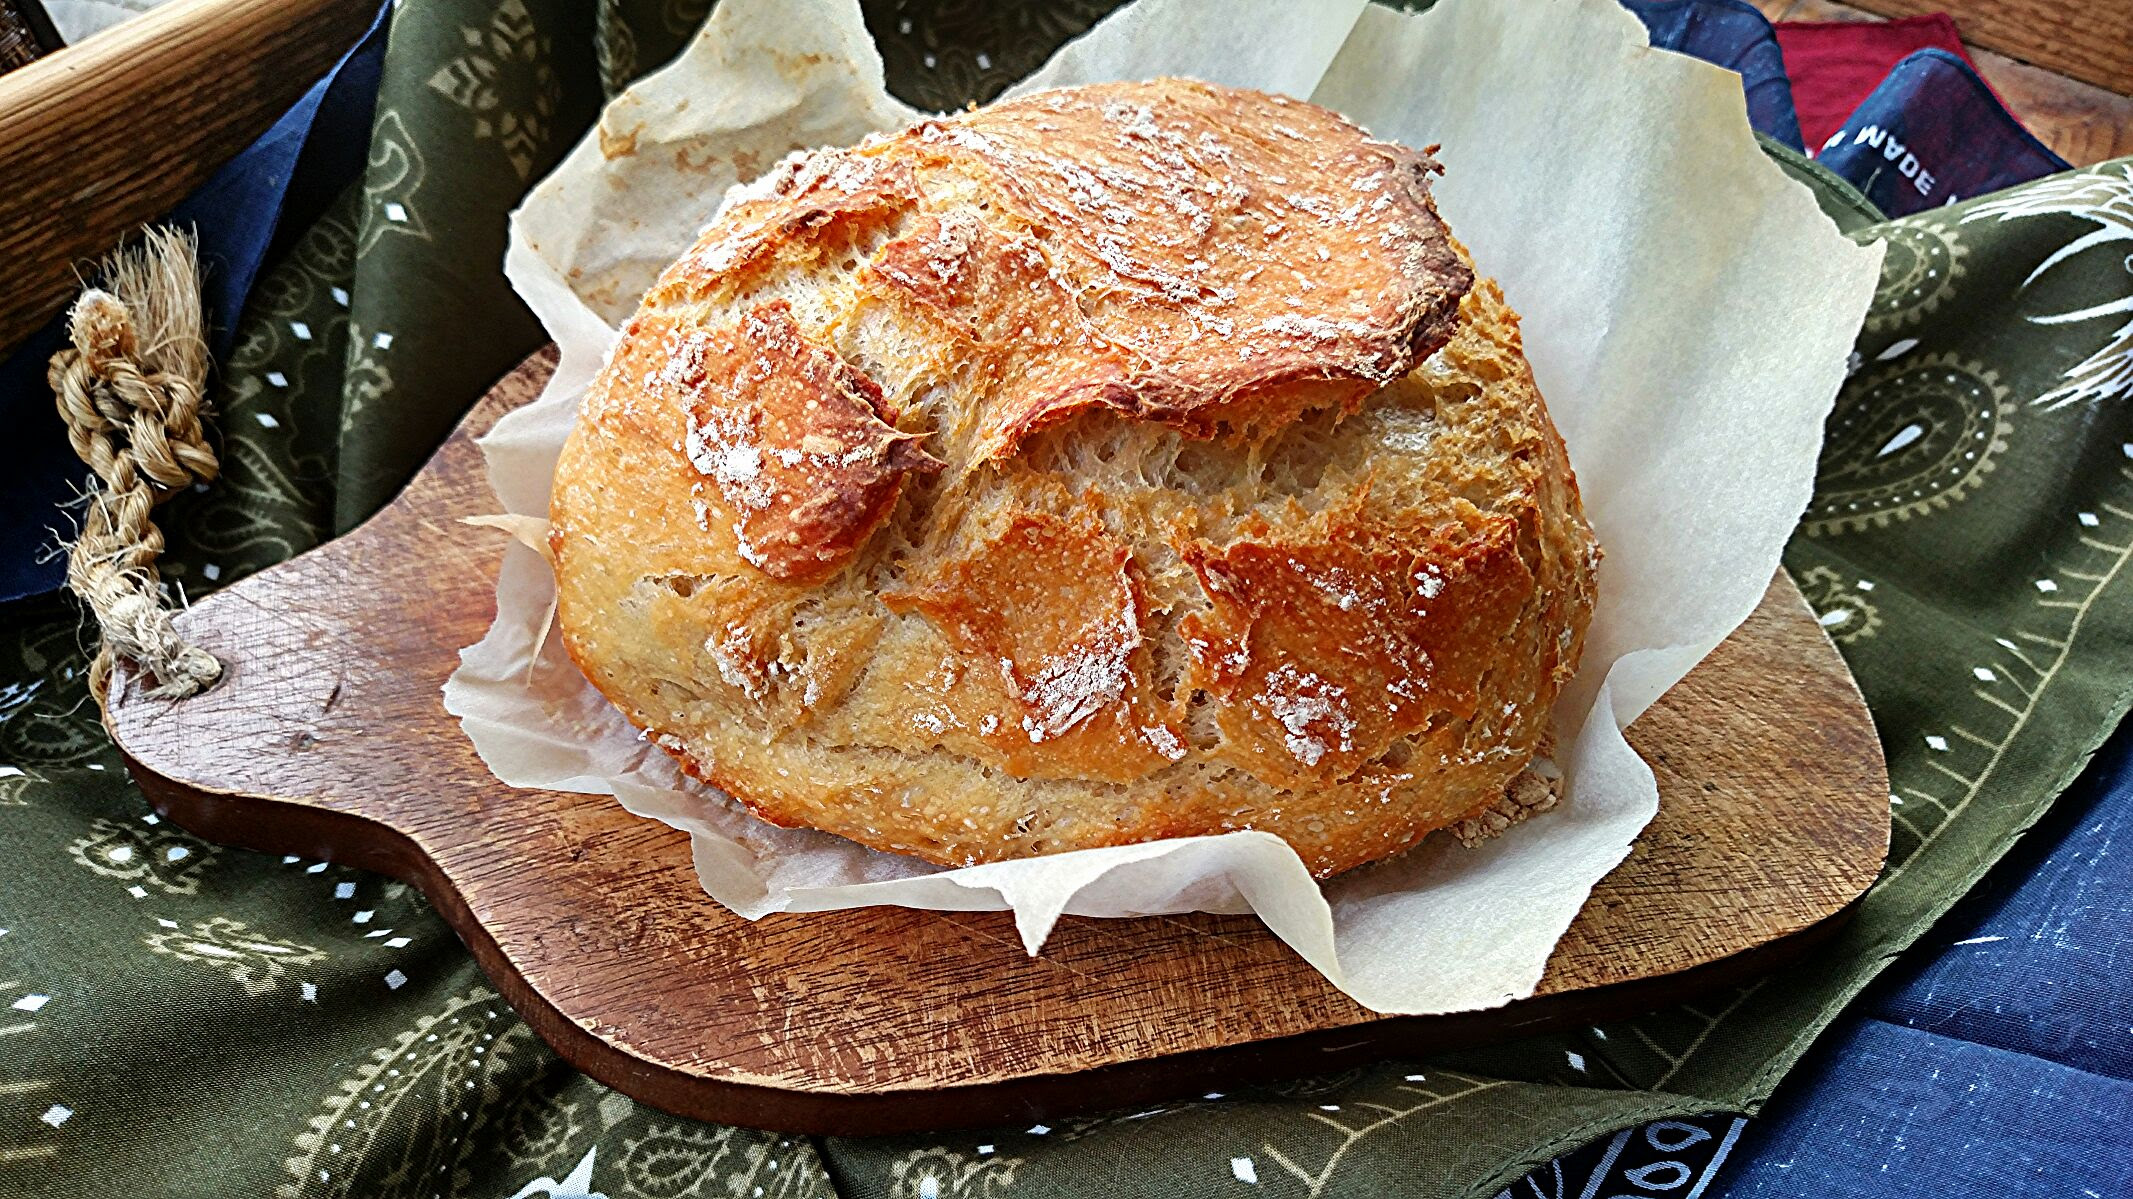 No Knead Dutch Oven Crusty Artisan Bread - Cook'n with Mrs. G